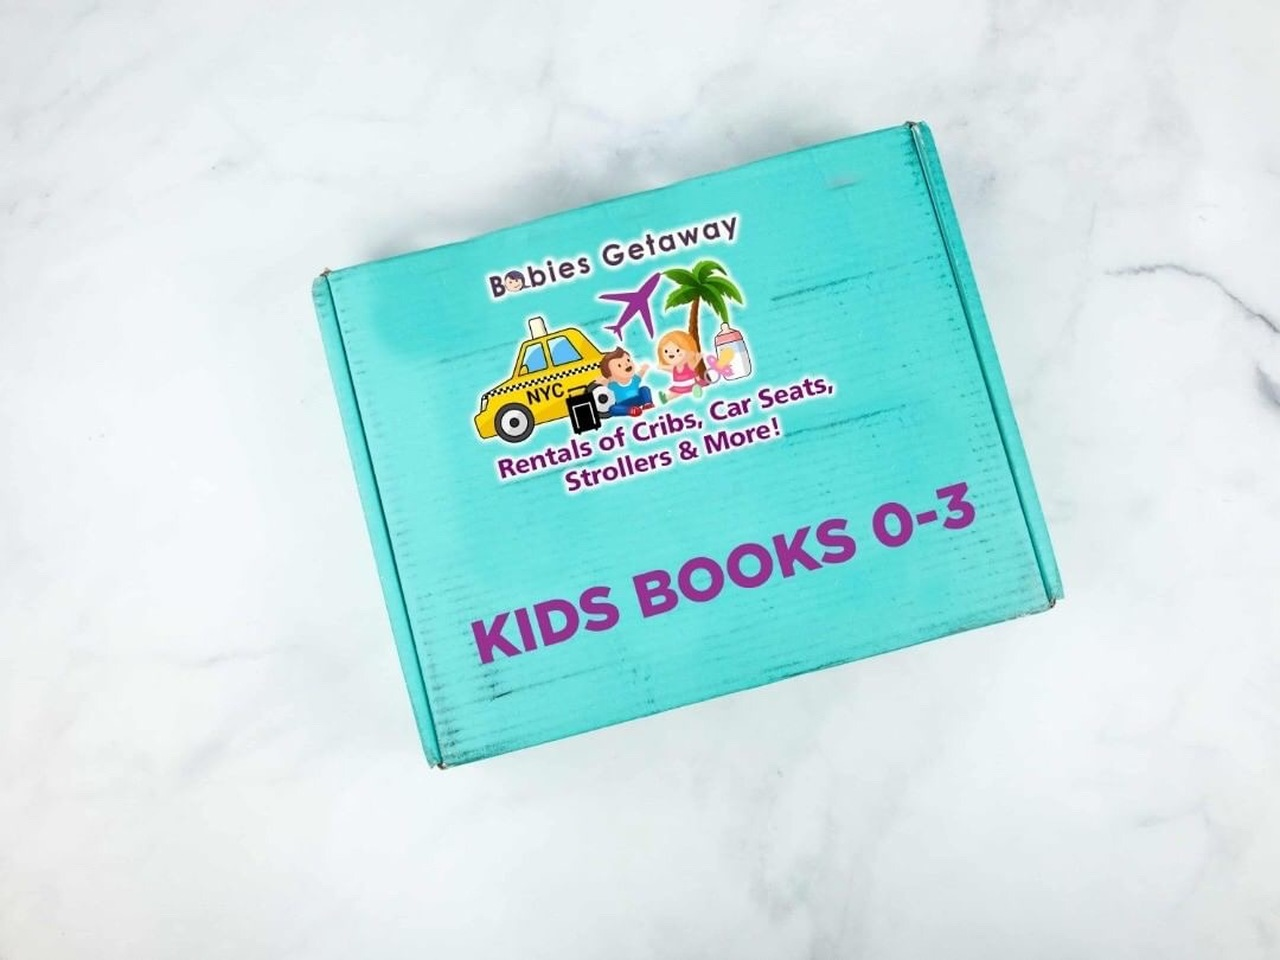 Kids Books 0-3